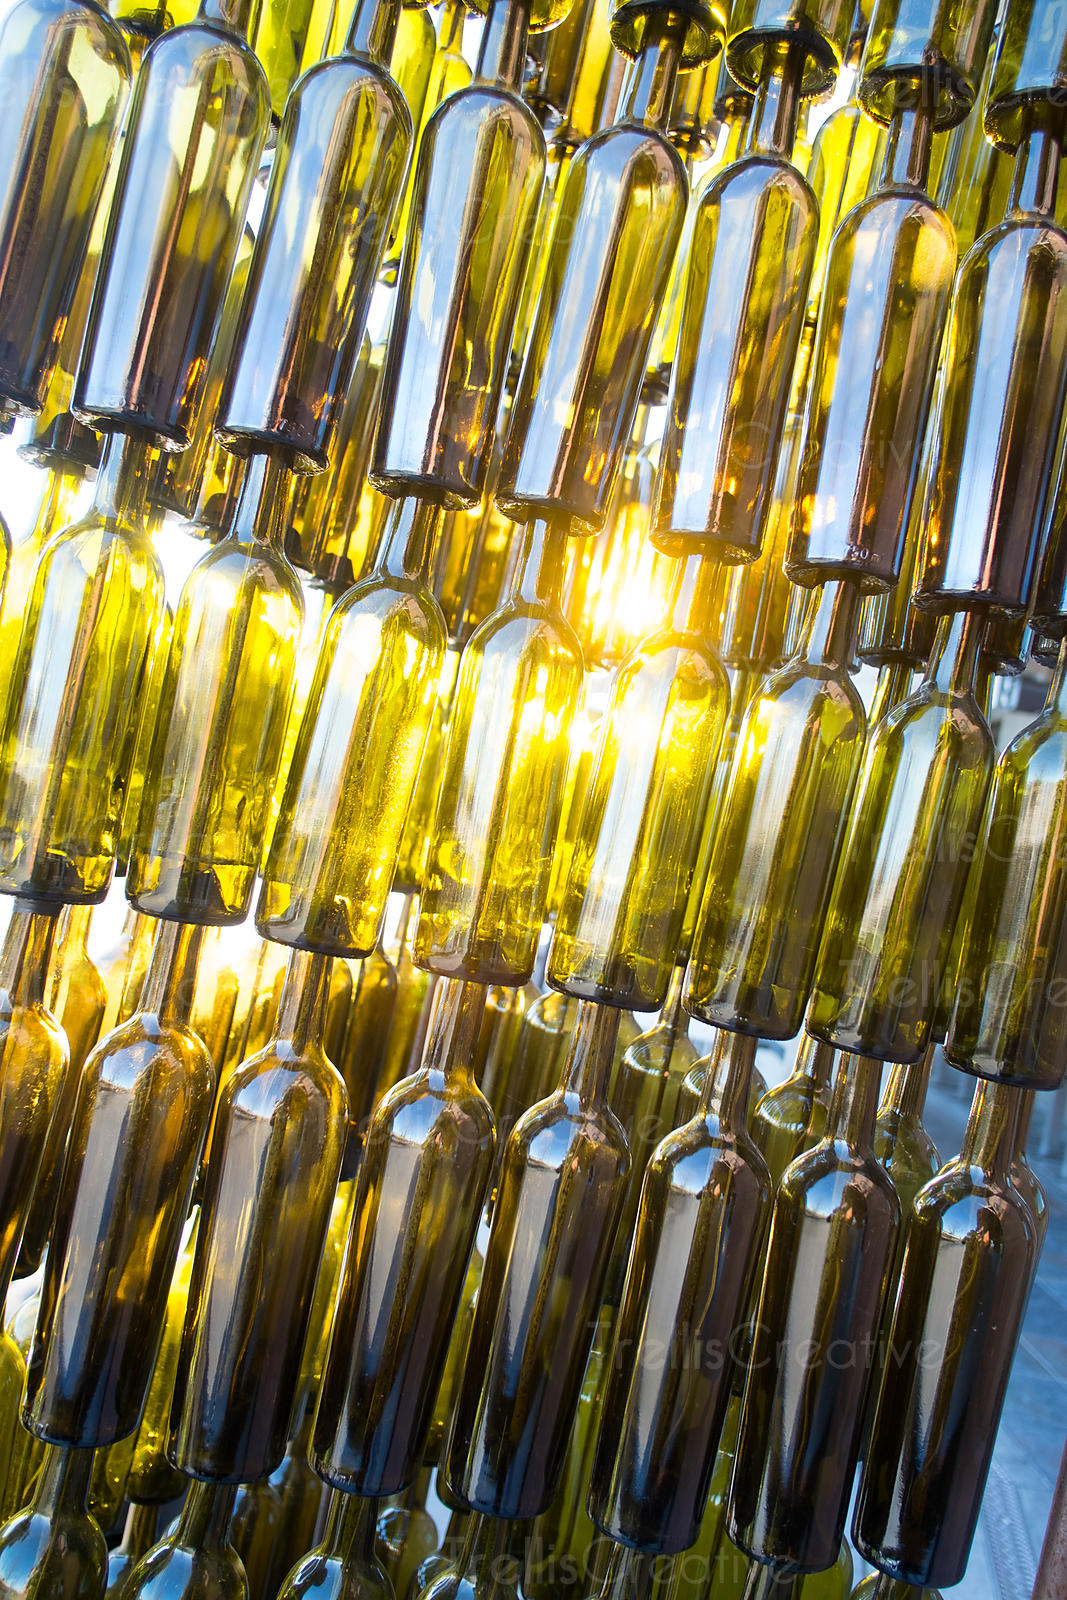 The light shines through a tower of stacked green wine bottles